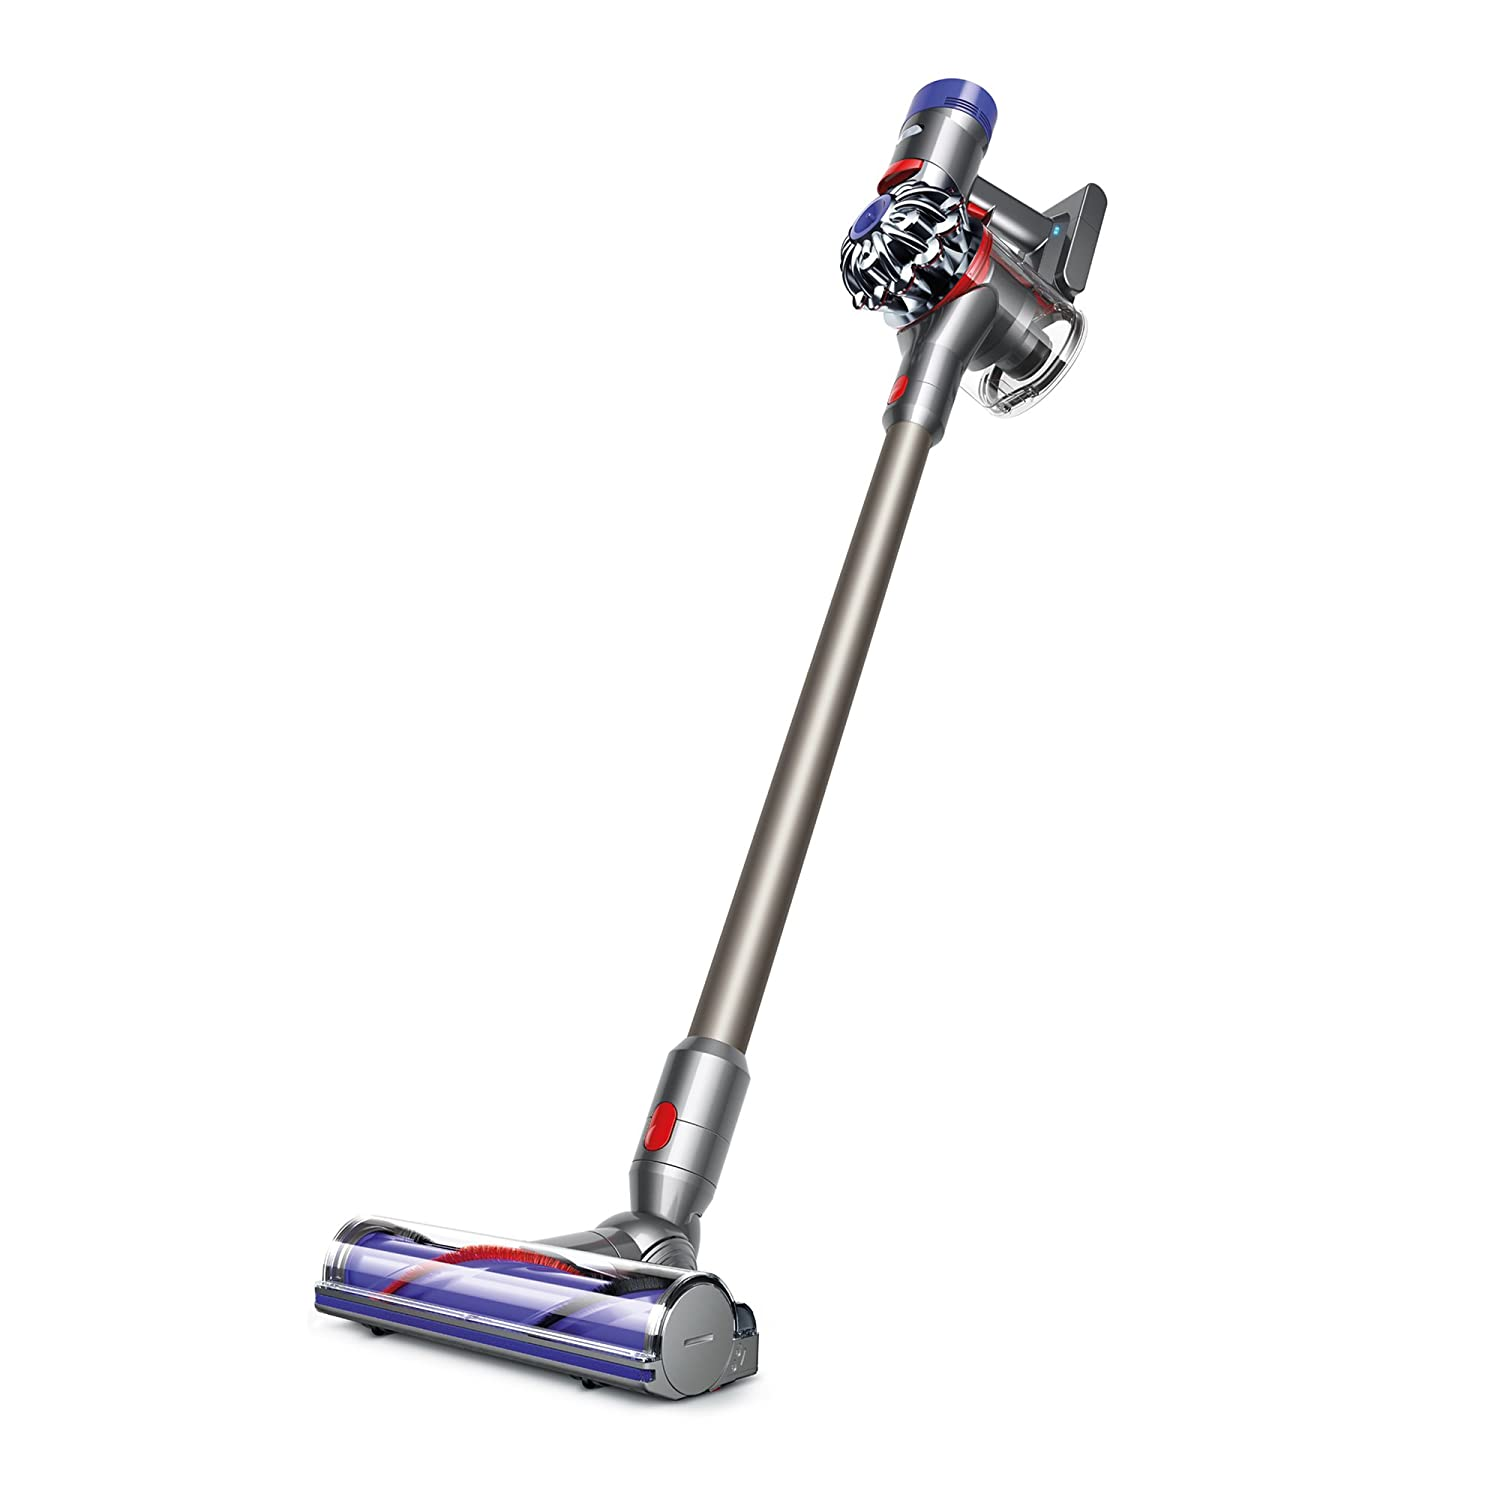 Dyson V8 Animal Cord Free Vacuum, Iron/Titanium Reviews